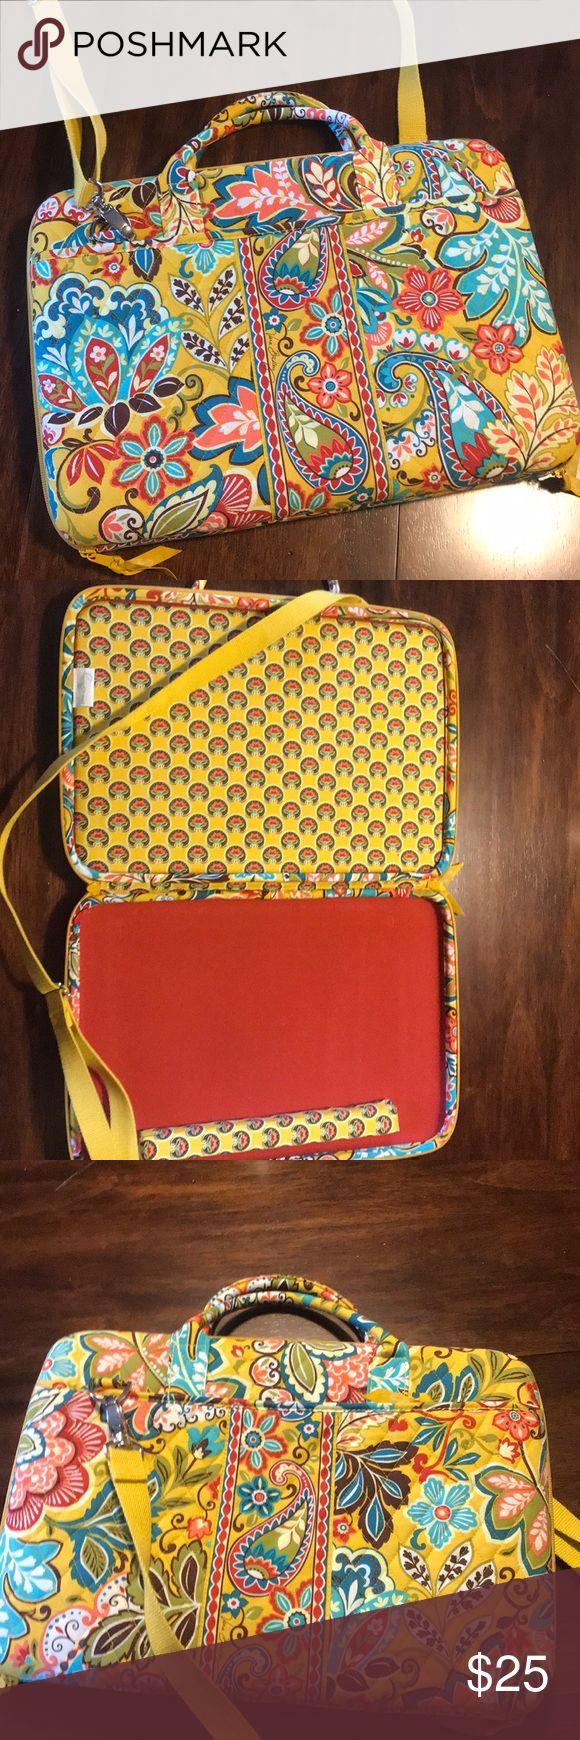 Laptop carry case Brand new beautiful colored Vera Bradley laptop case with strap and removable wrist bar. This item is brand new I took tags off to give this to my daughter but she did not use it. Vera Bradley Bags Laptop Bags